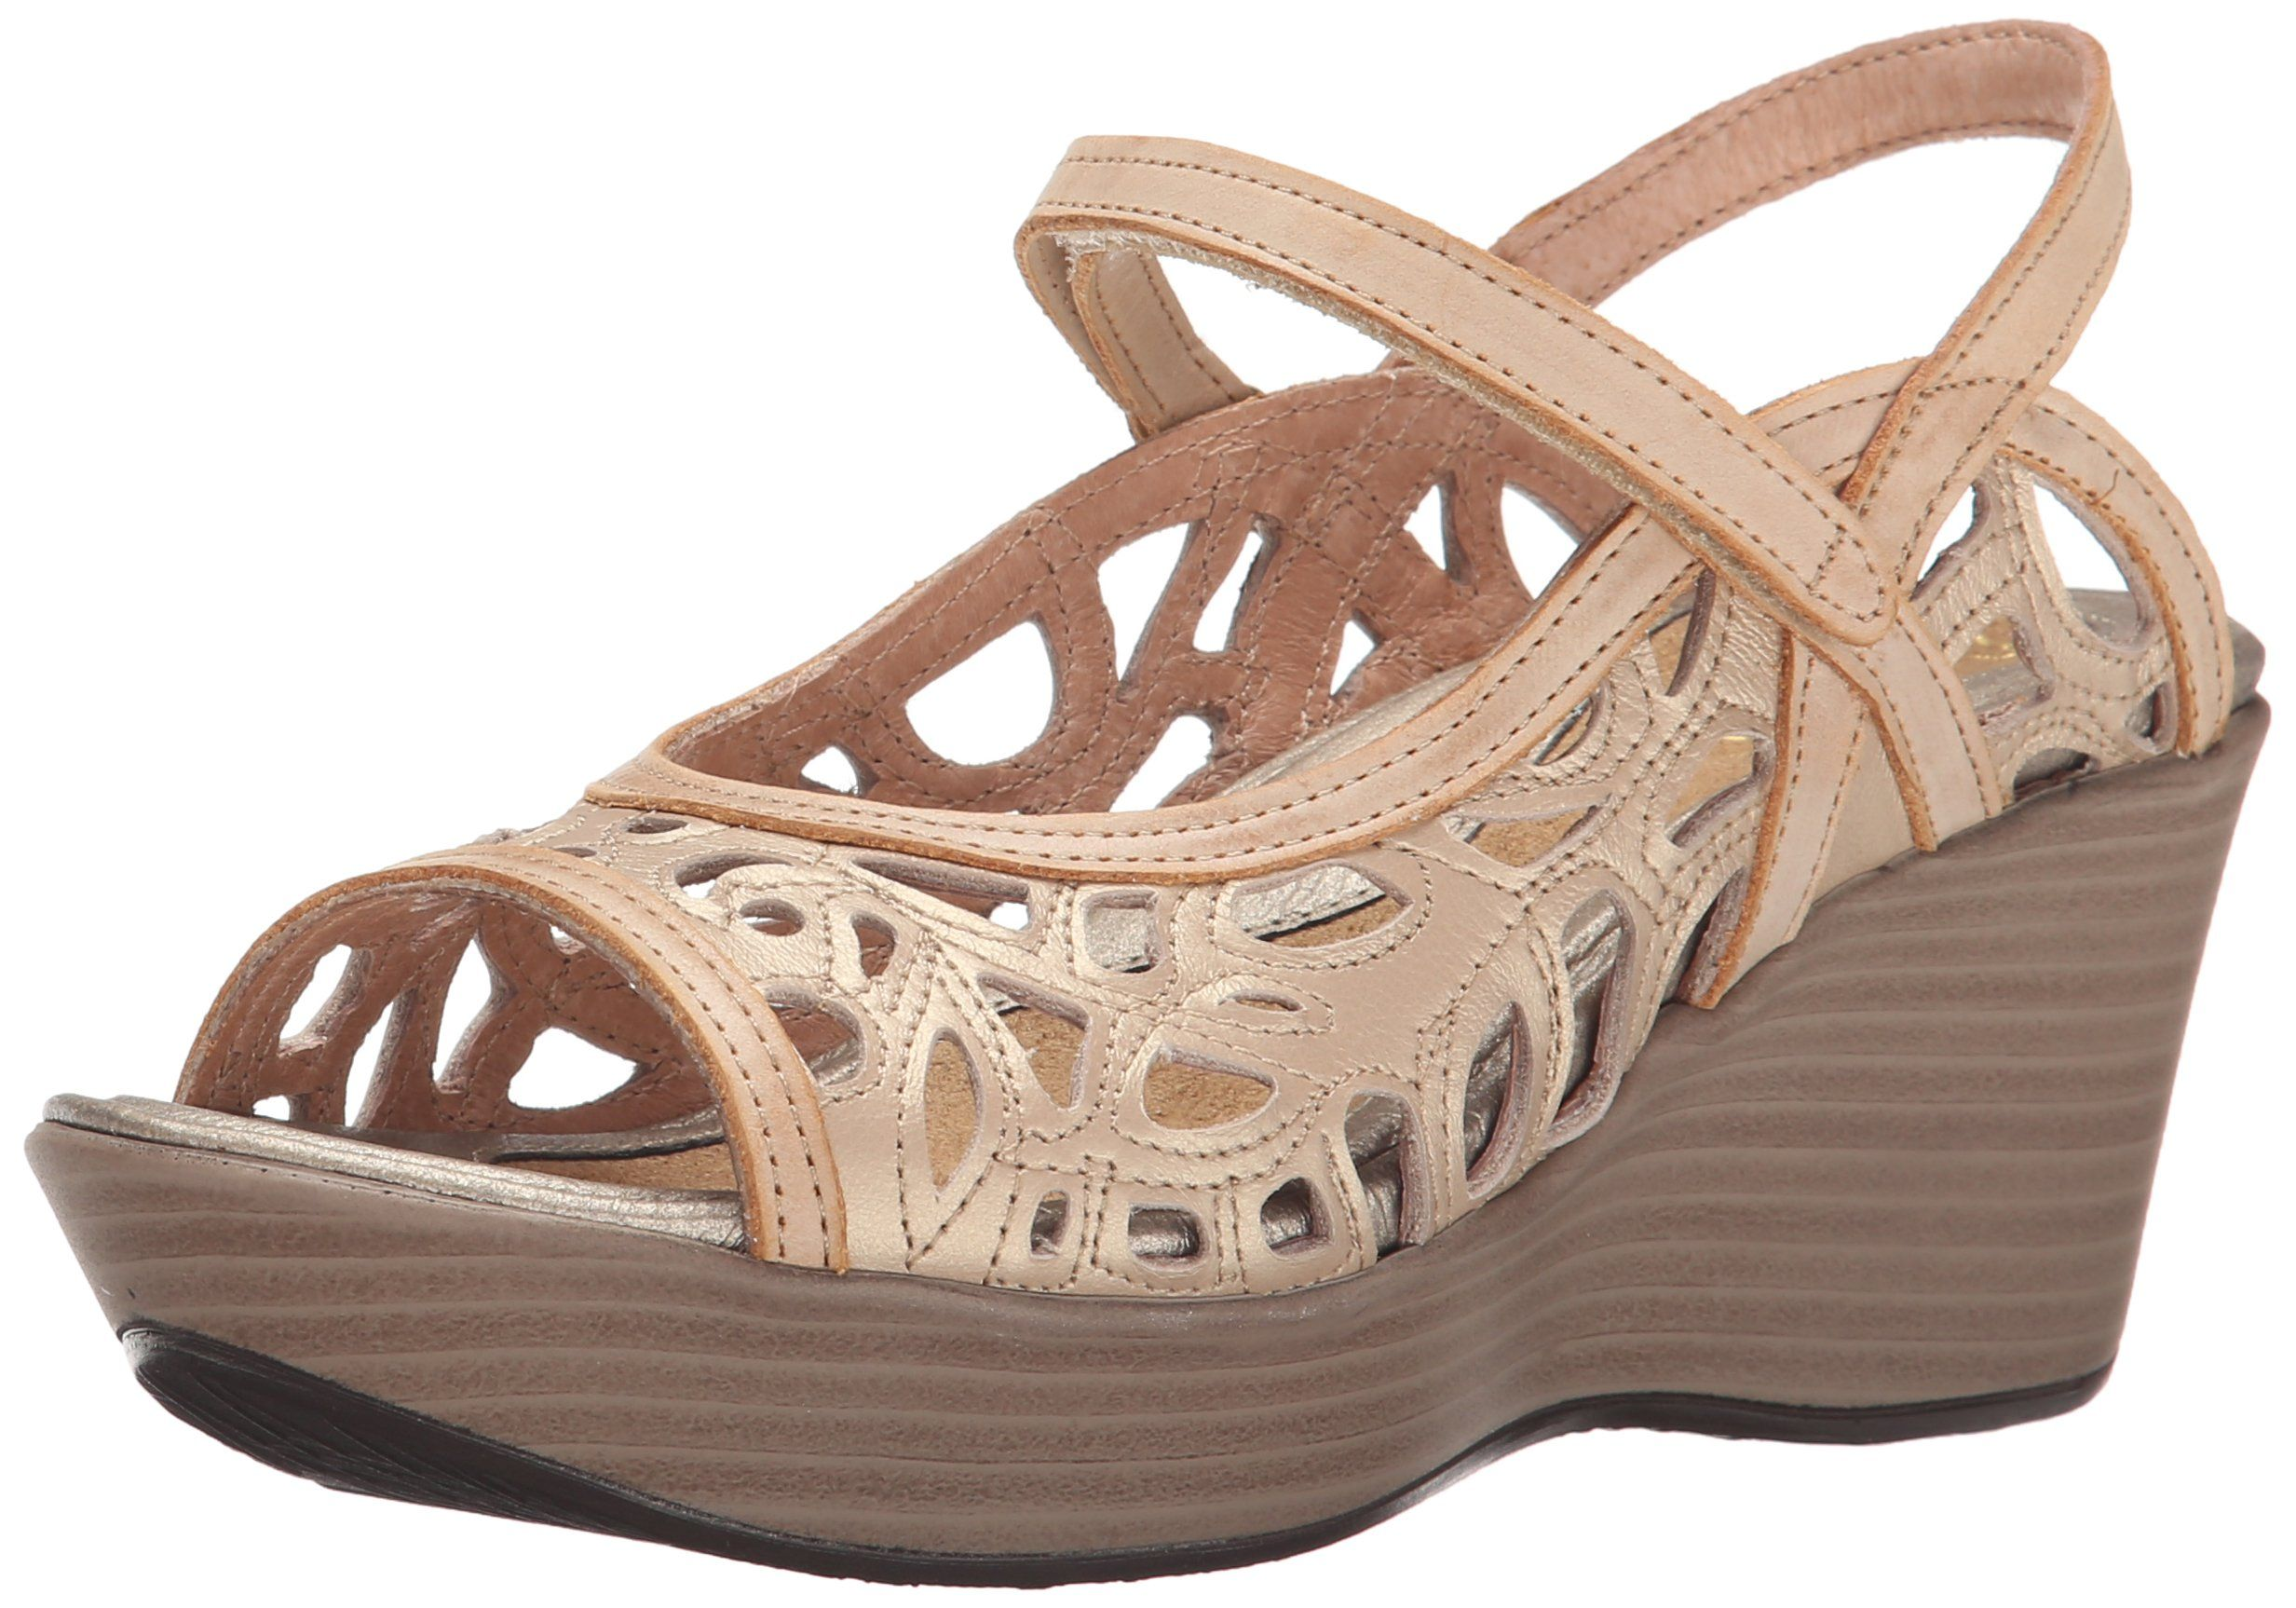 4f57c139a78e Naot Women s Deluxe Wedge Sandal